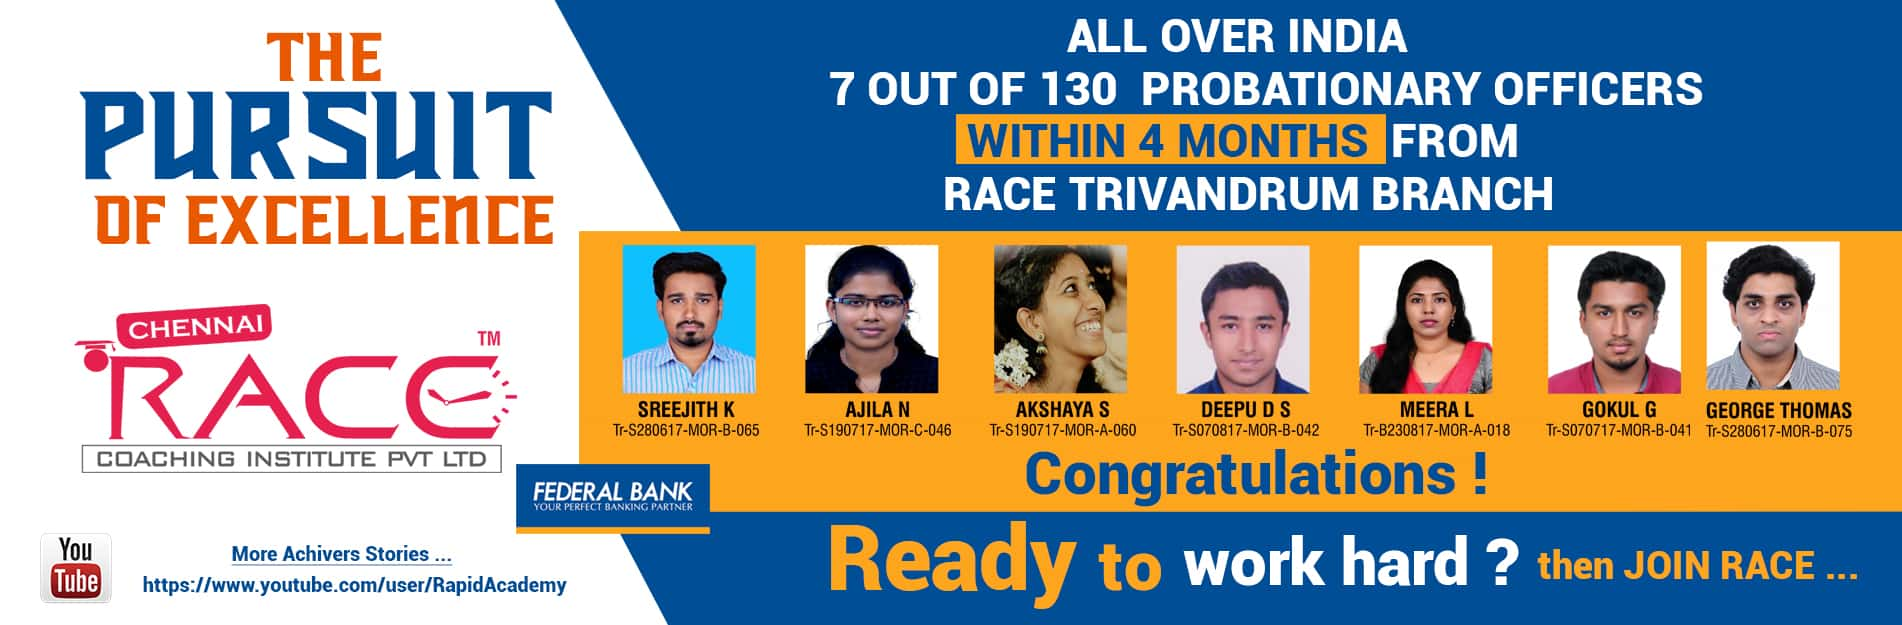 Race Institute trivandrum branch